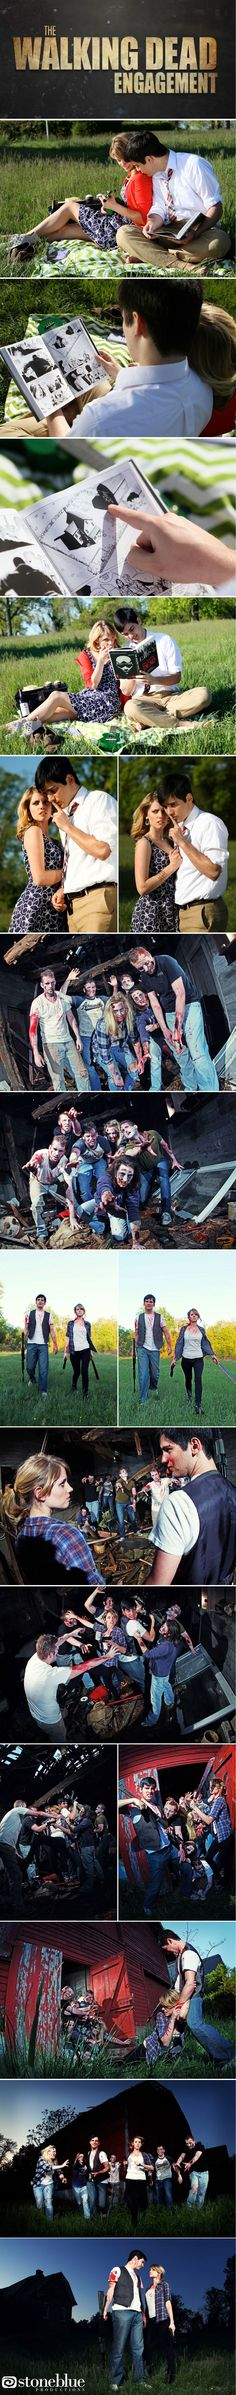 """The Walking Dead"" fans had a zombie themed engagement shoot with their friends. Engagement Pictures, Engagement Shoots, Wedding Story, Dream Wedding, Comic Book Wedding, Zombie Wedding, Photo Time, Aisle Style, Creative Wedding Ideas"